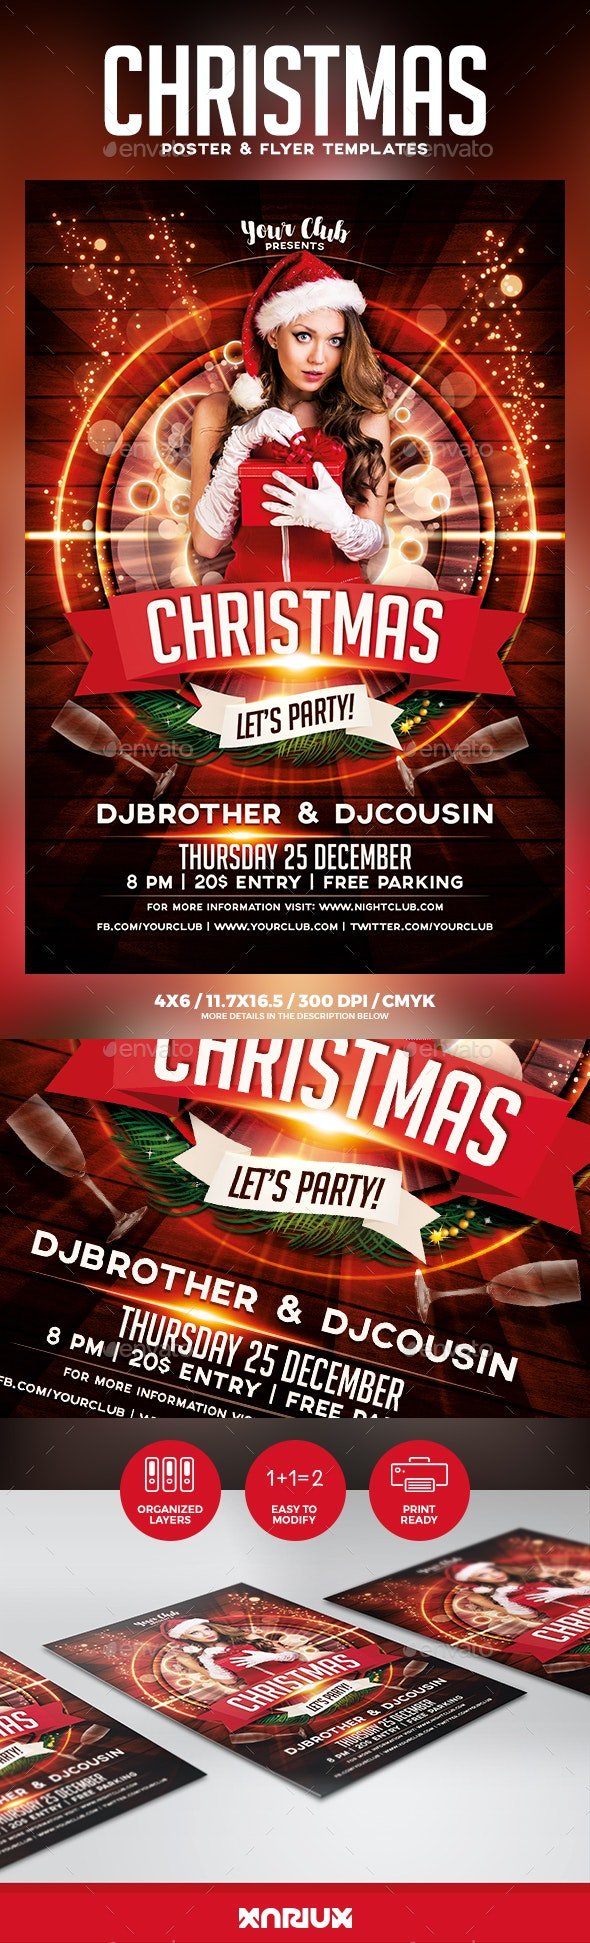 Christmas Party Flyer and Poster - Holidays Events